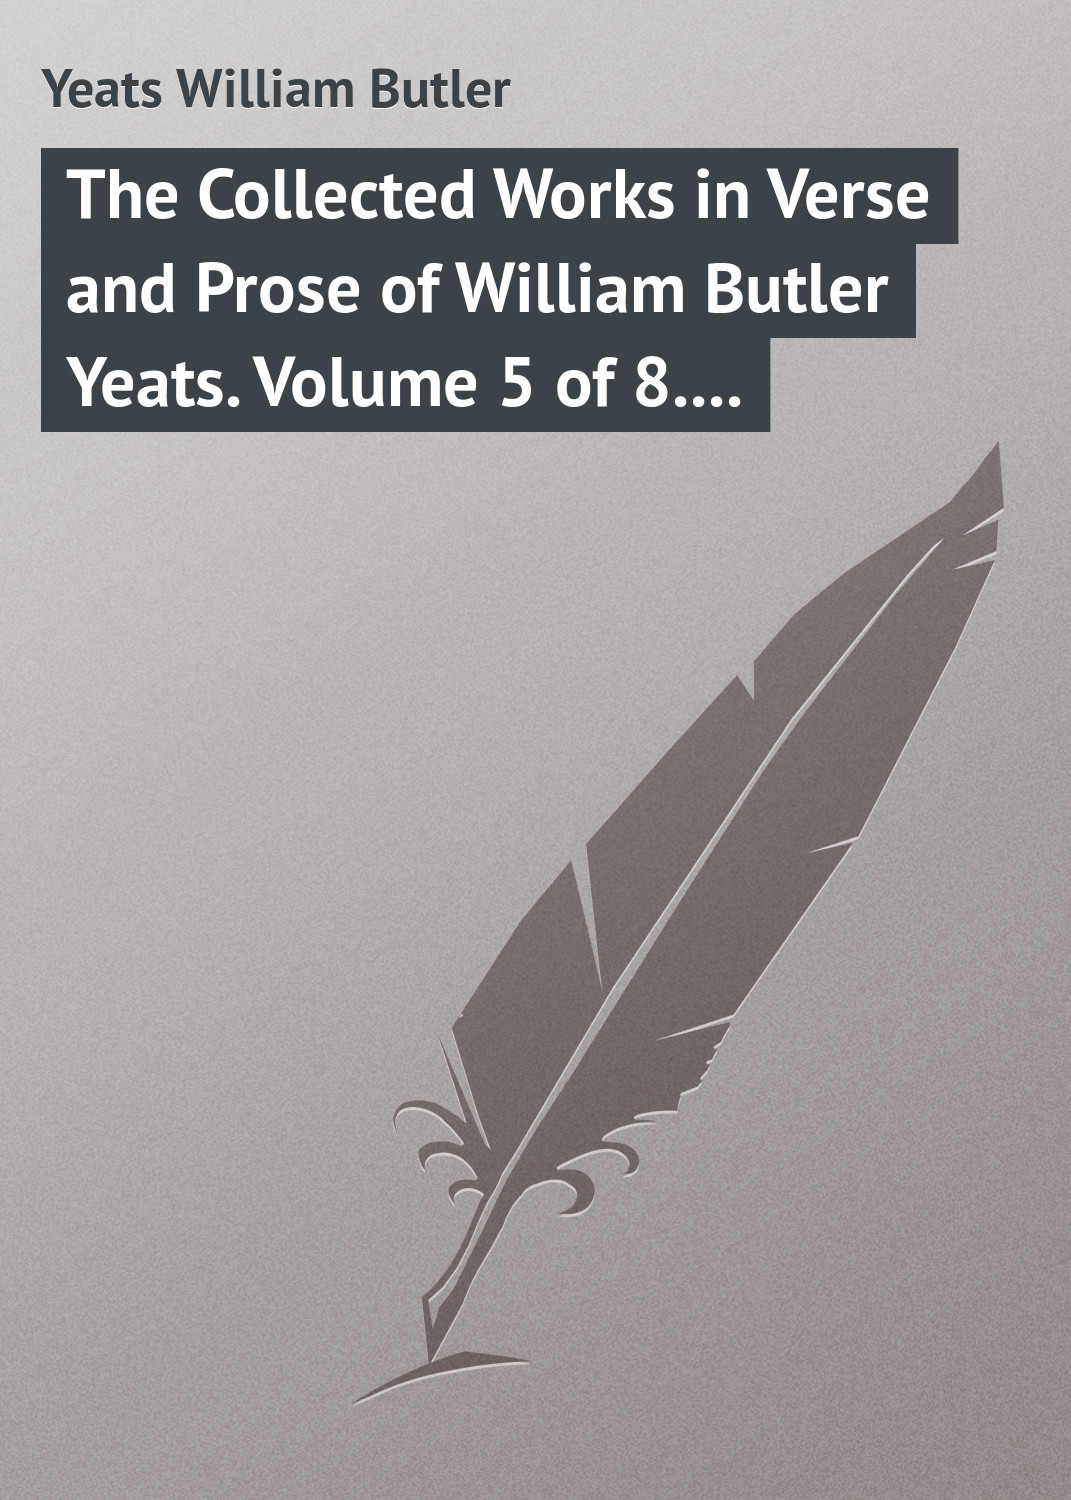 William Butler Yeats The Collected Works in Verse and Prose of William Butler Yeats. Volume 5 of 8. The Celtic Twilight and Stories of Red Hanrahan collected stories